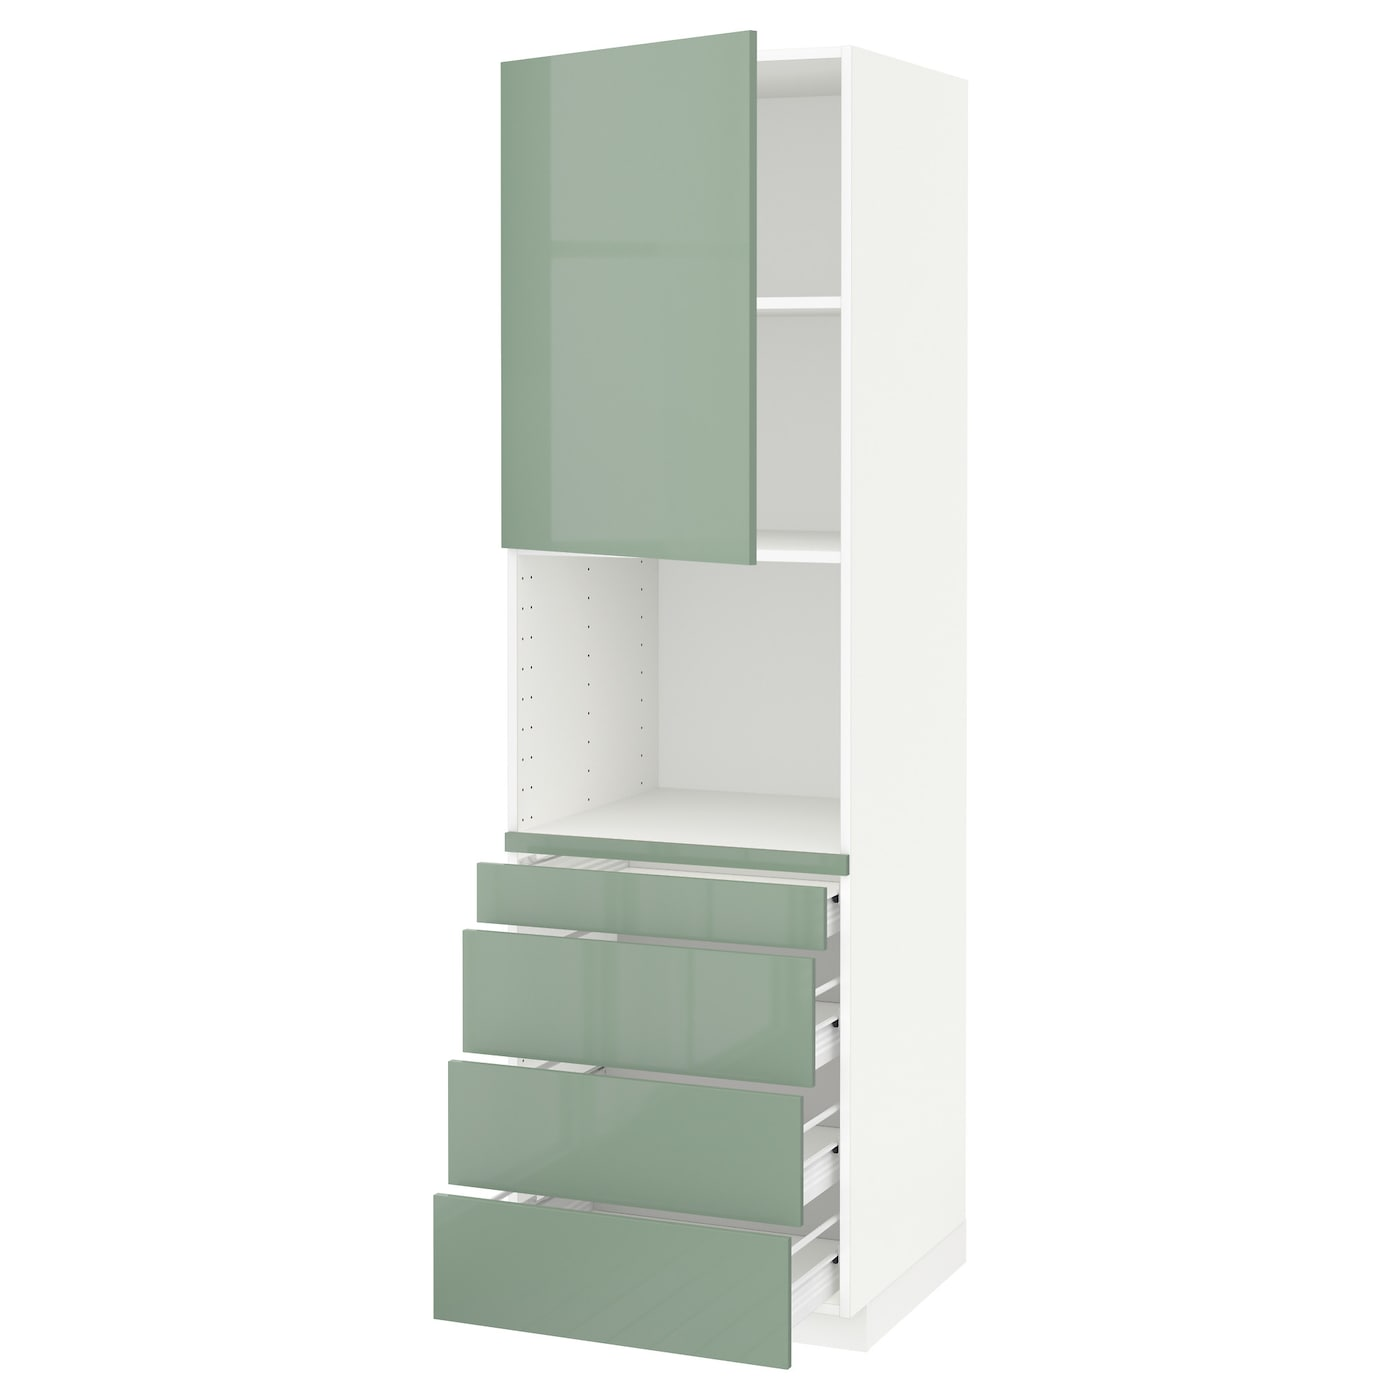 IKEA METOD/FÖRVARA high cab for combi micro/4 drawers Sturdy frame construction, 18 mm thick.